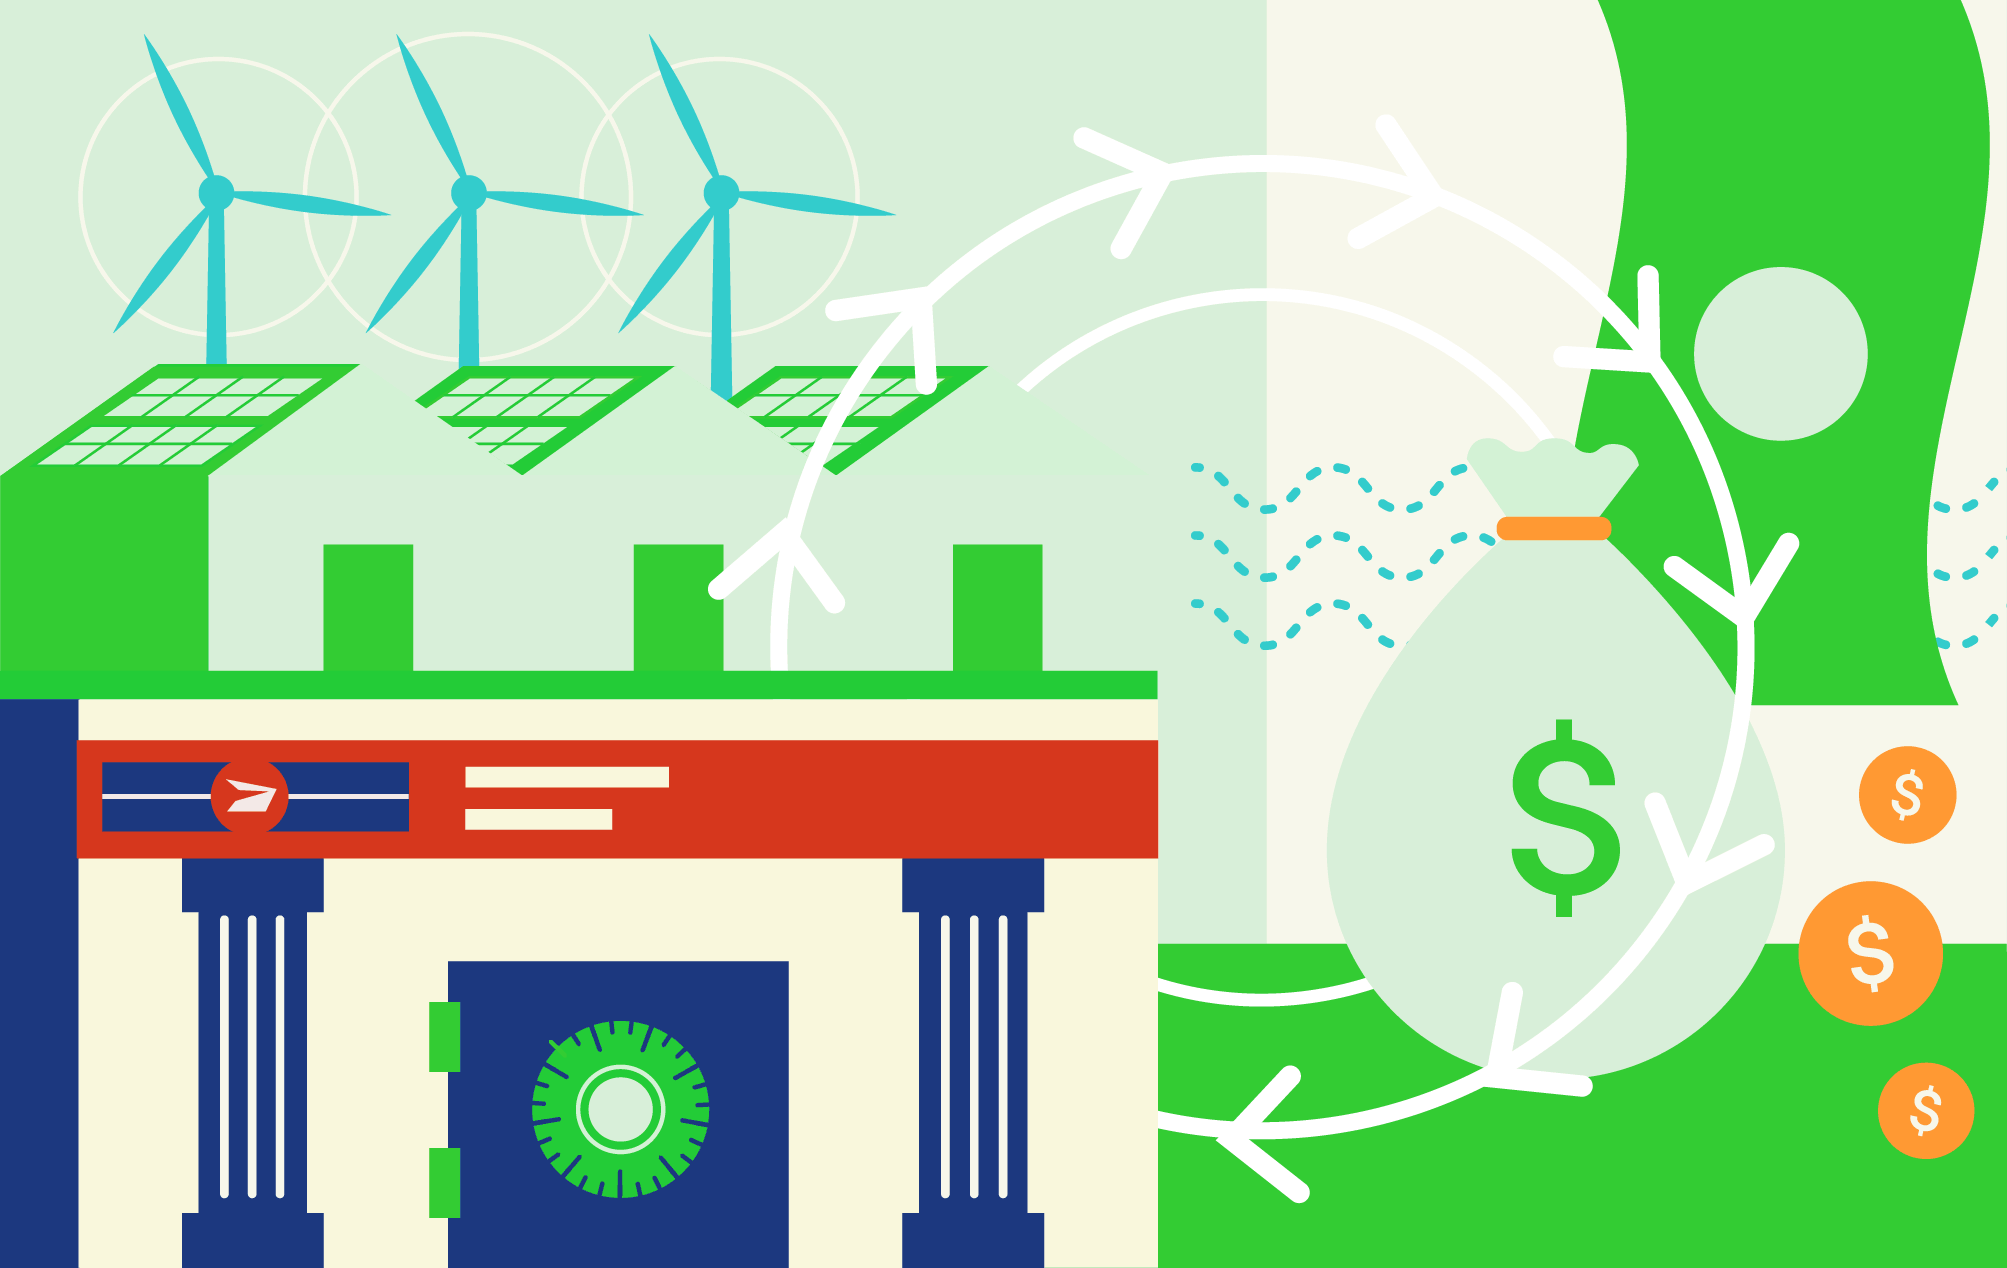 Illustration of a post office with banking services